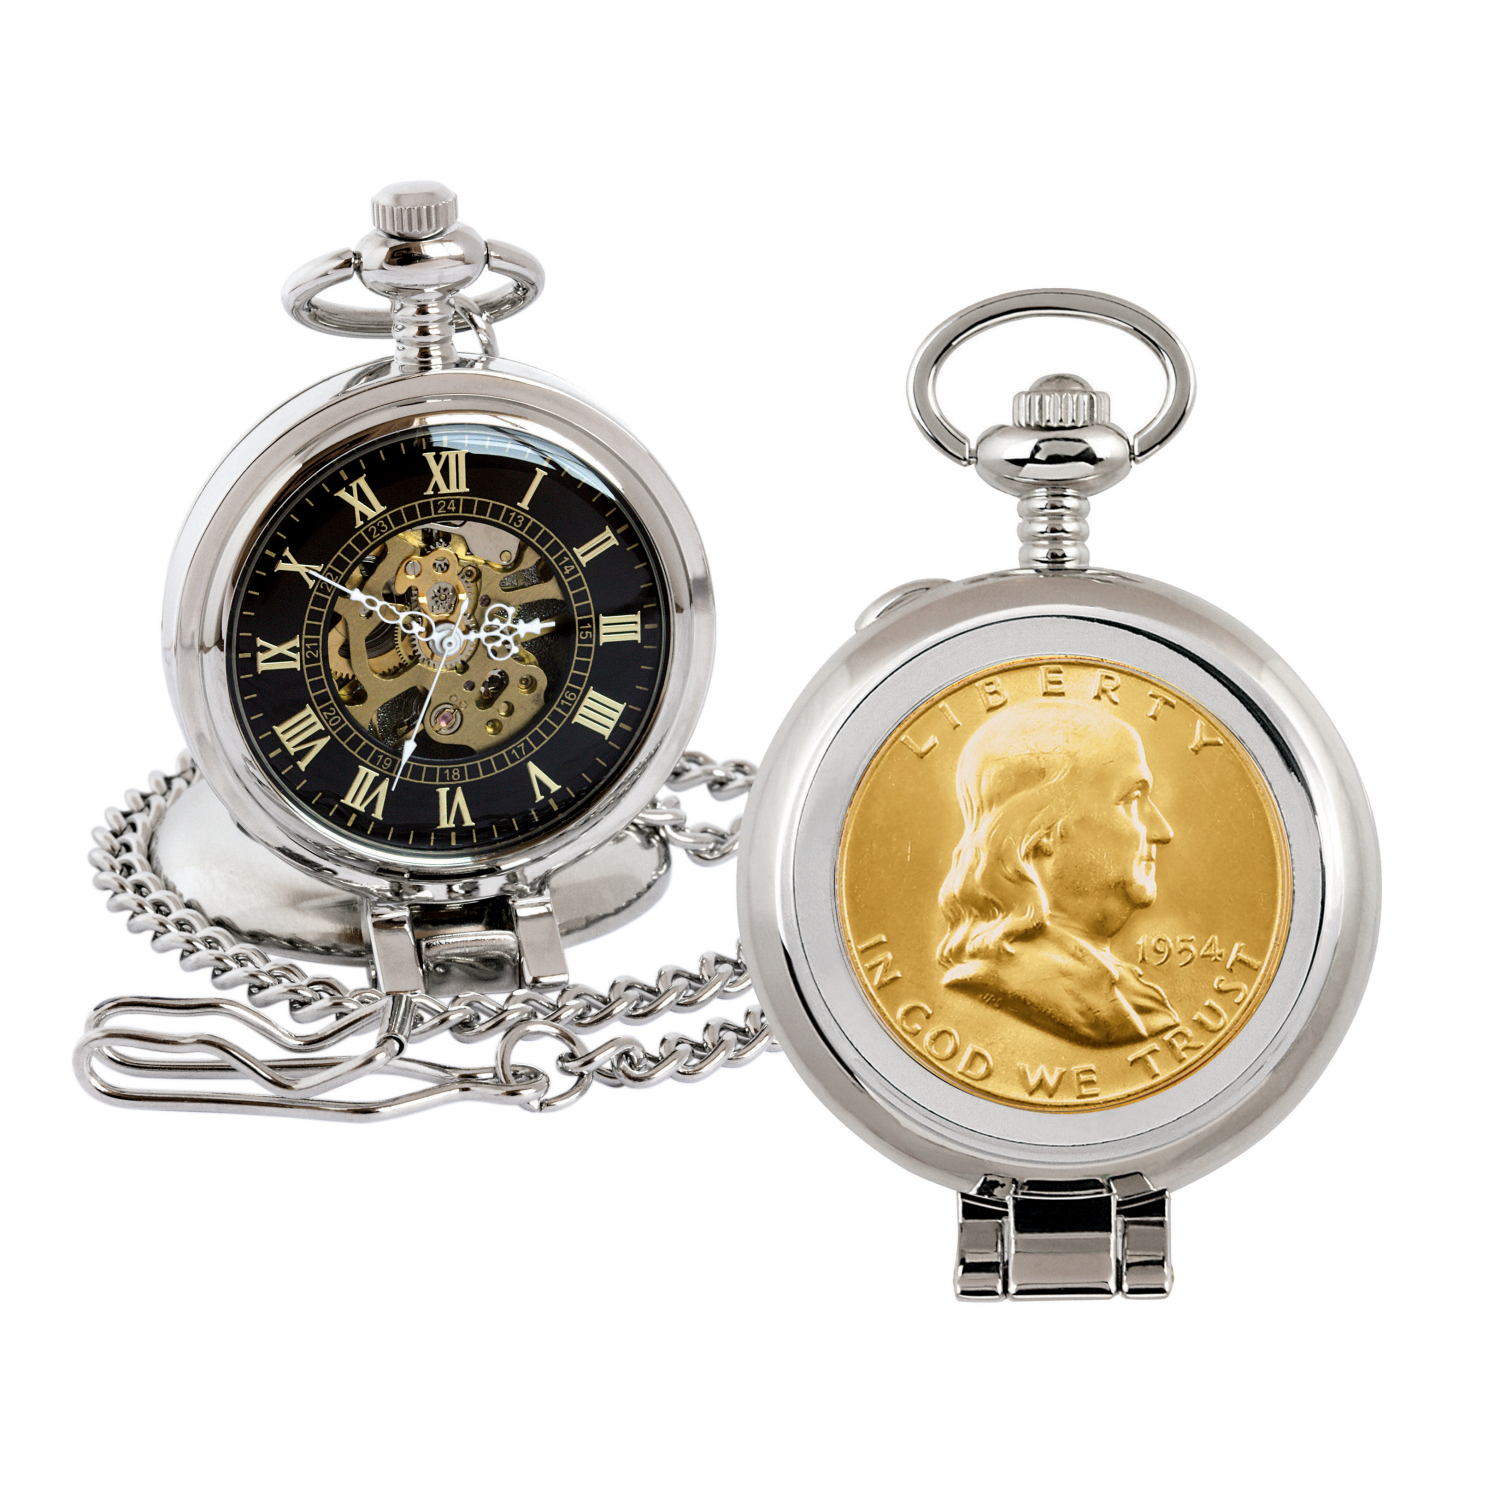 Gold-Layered Silver Franklin Half Dollar Coin Pocket Watch With Skeleton Movement - Black Dial With Gold Roman Numerals